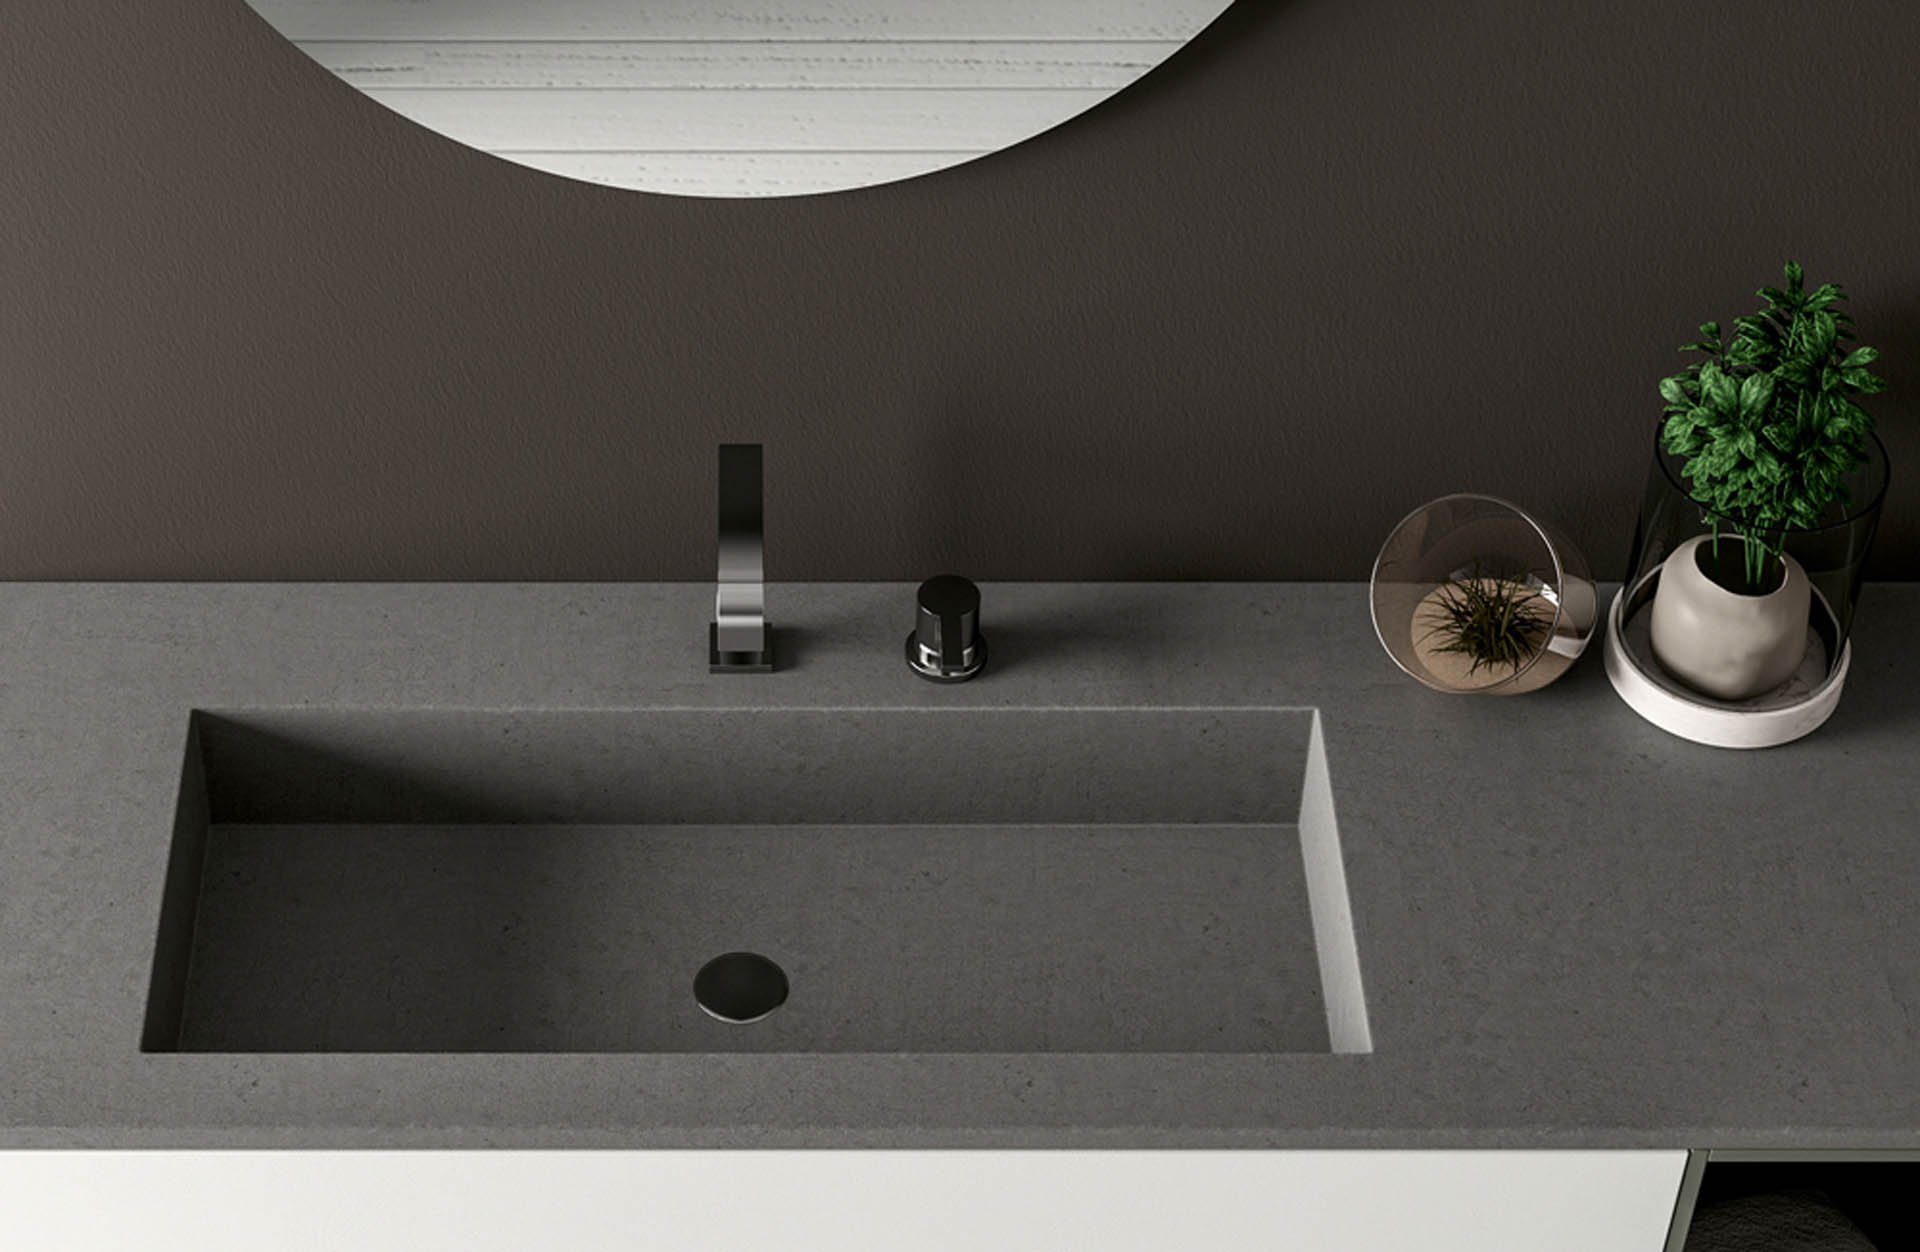 bagno-time-2-3